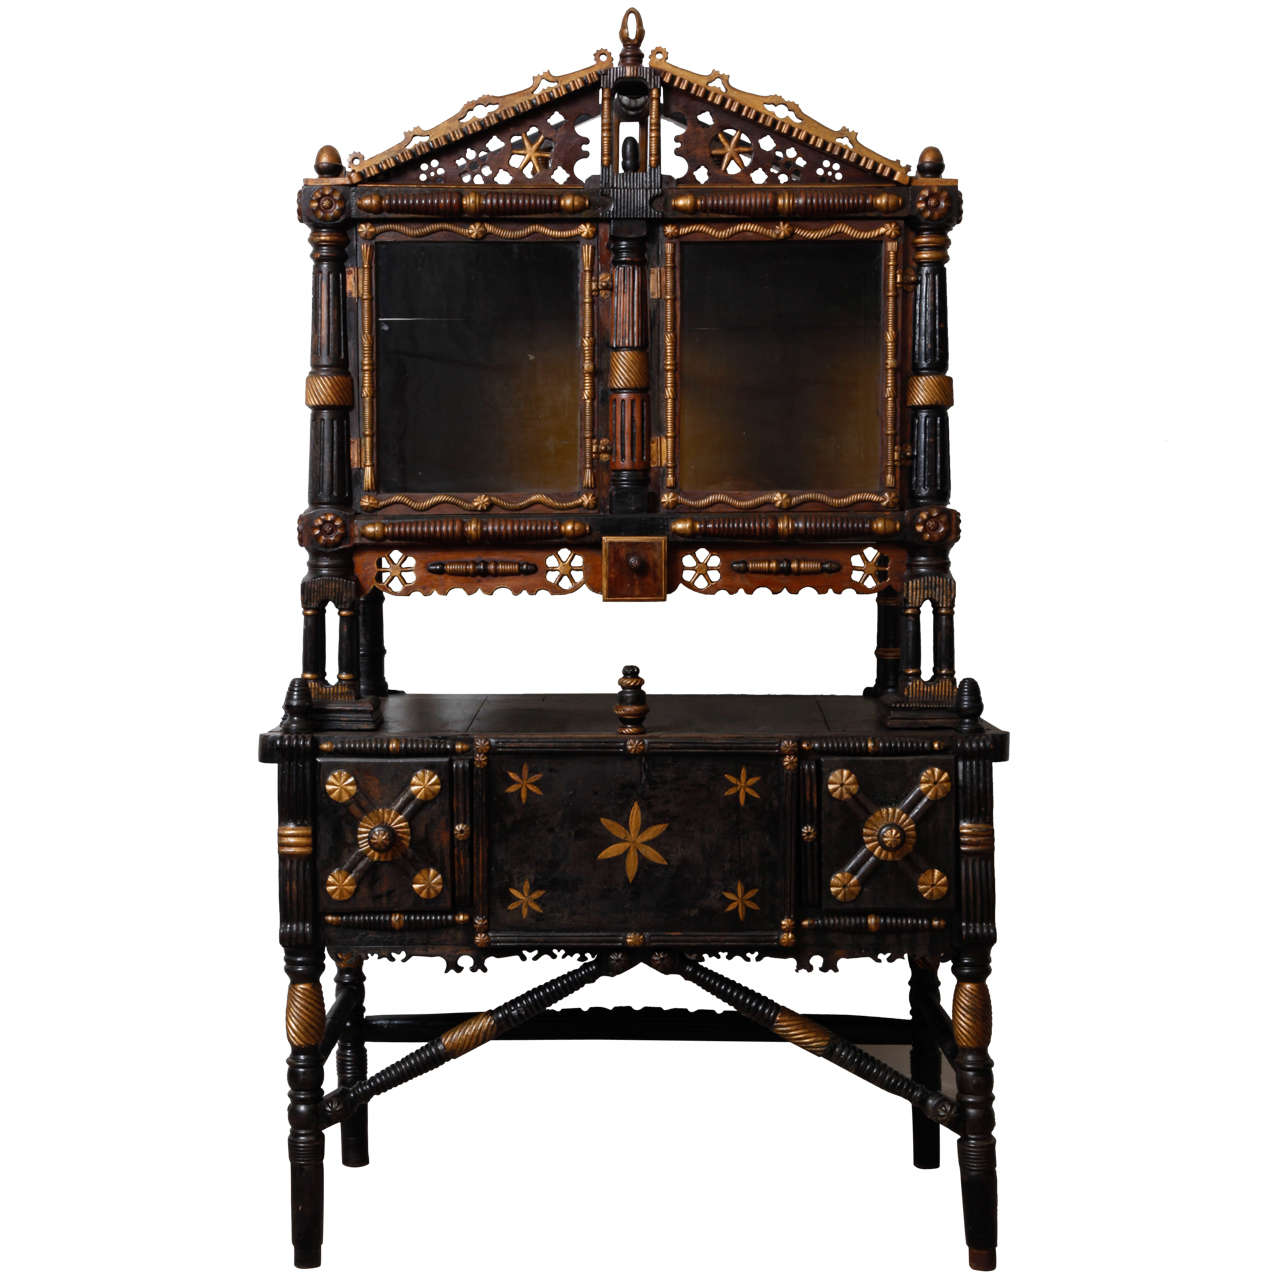 Swiss Vaud Canton Folk Art Cabinet Circa 1910 At 1stdibs